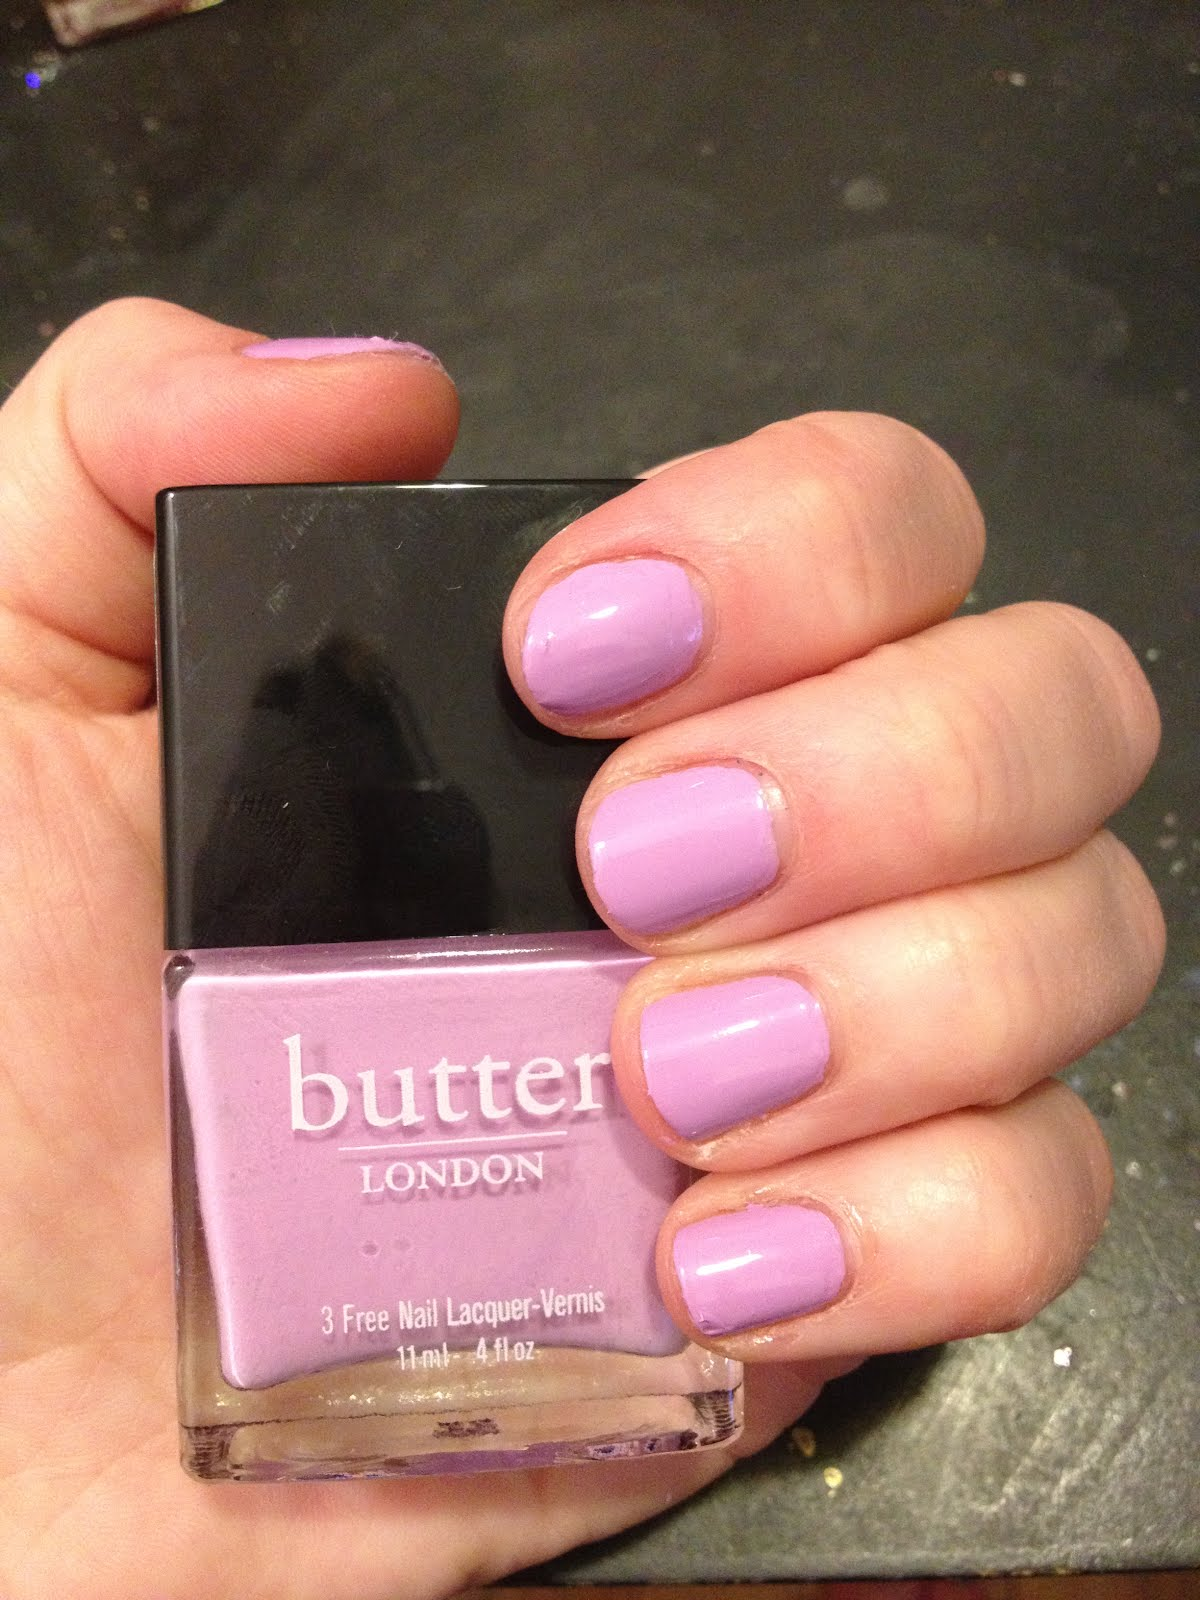 The Beauty of Life: butter LONDON Nail Polish Swatches